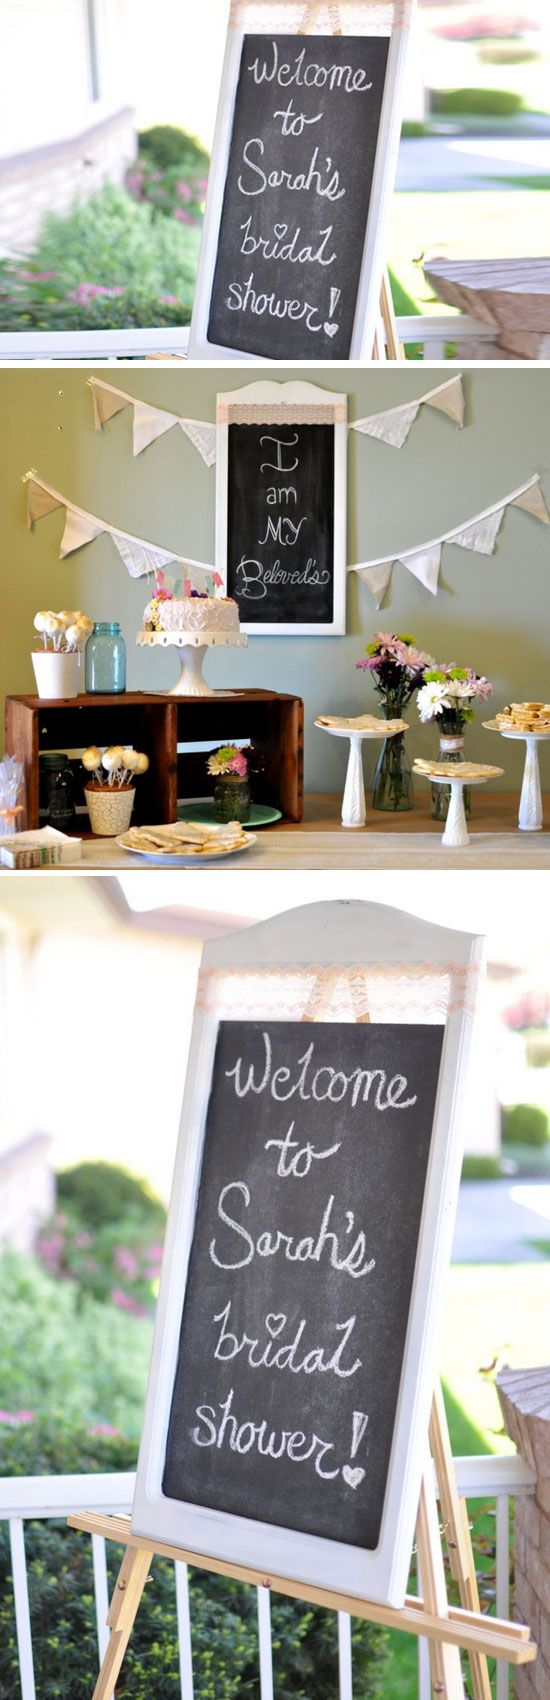 25+ diy bridal shower party decorations ideas | pinterest | diy